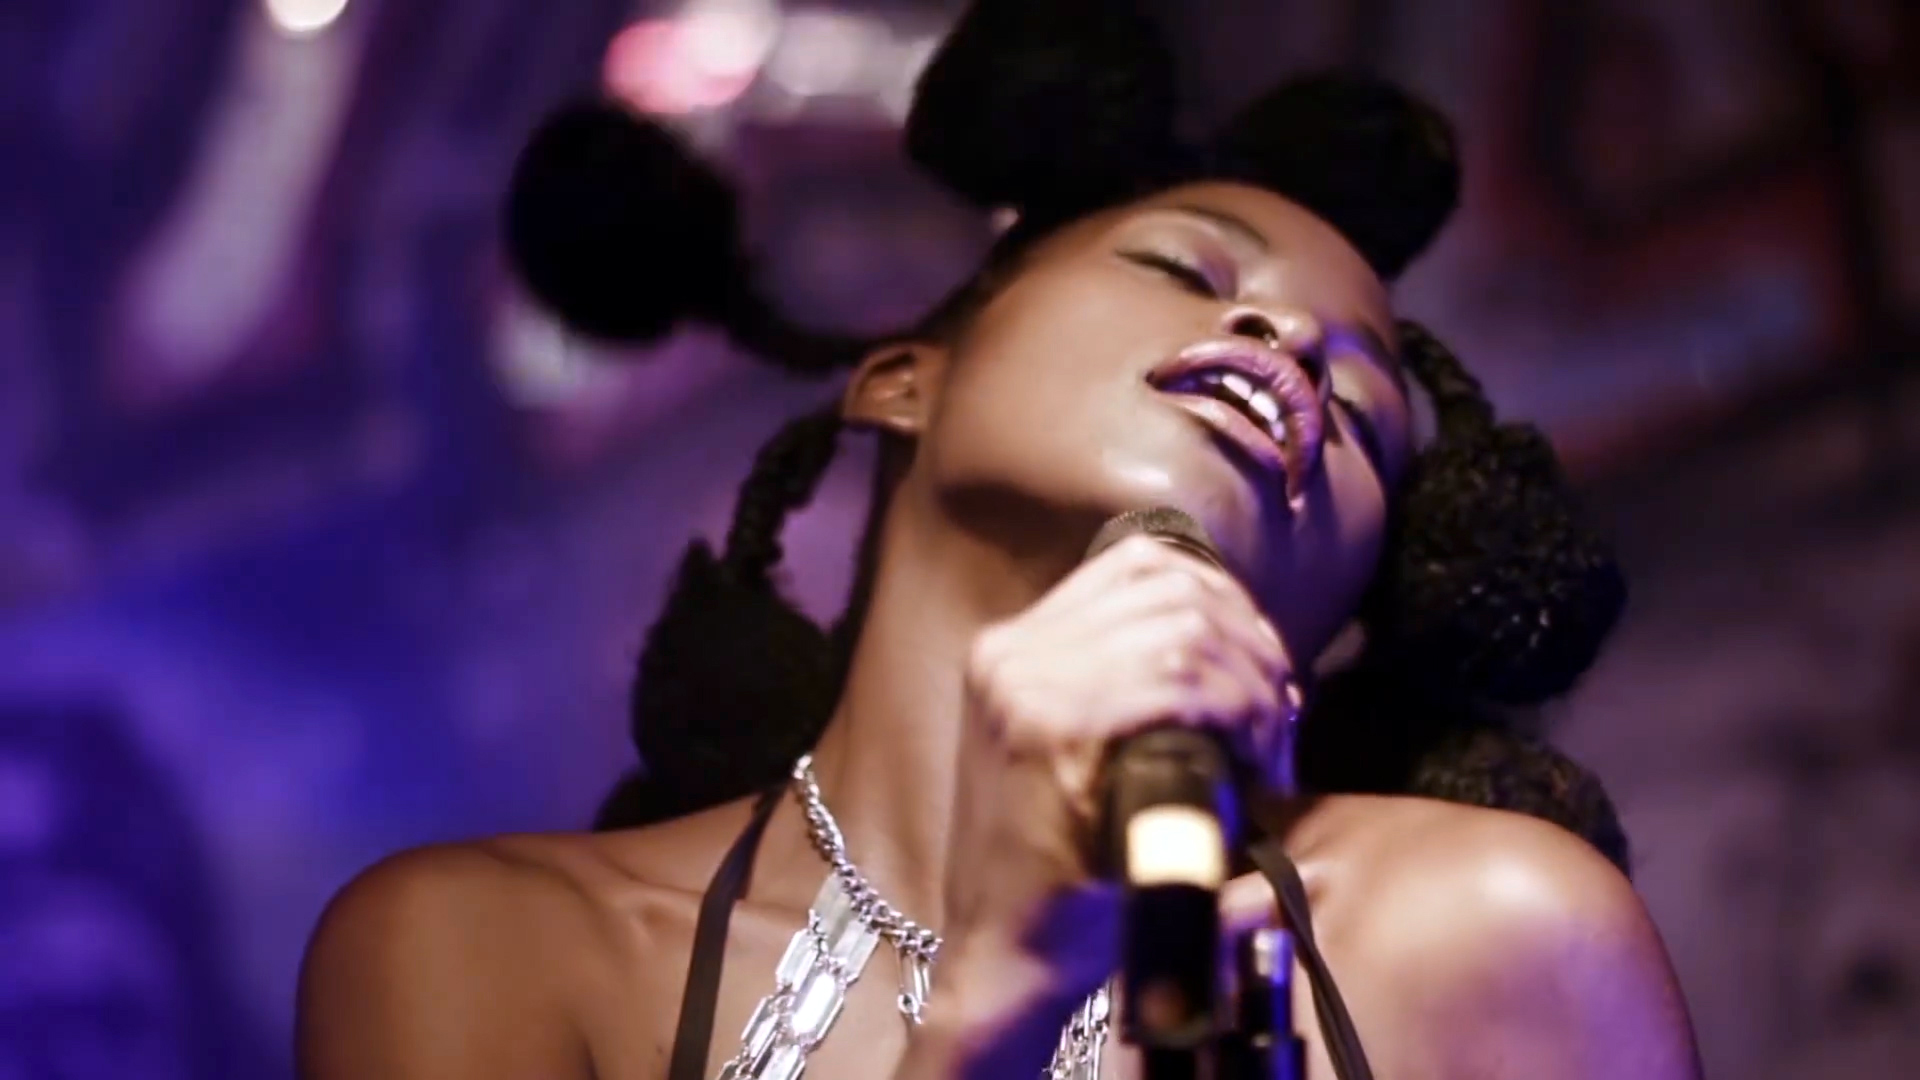 reniss-la-sauce-directed-by-ndukong-full-hd1080p-00_01_00_10-still001